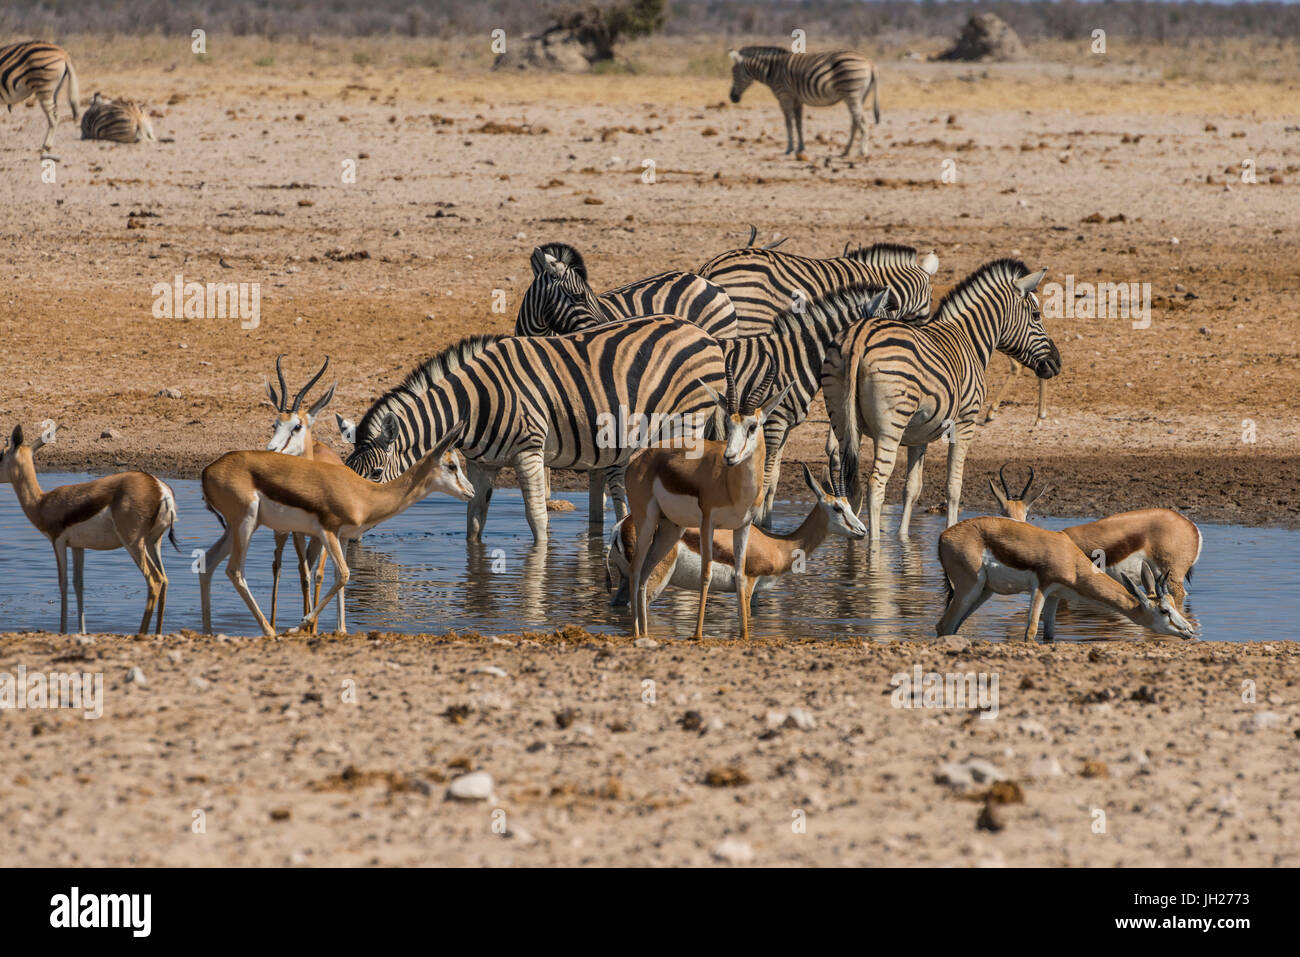 Animals flocking around a waterhole, Etosha National Park, Namibia, Africa - Stock Image